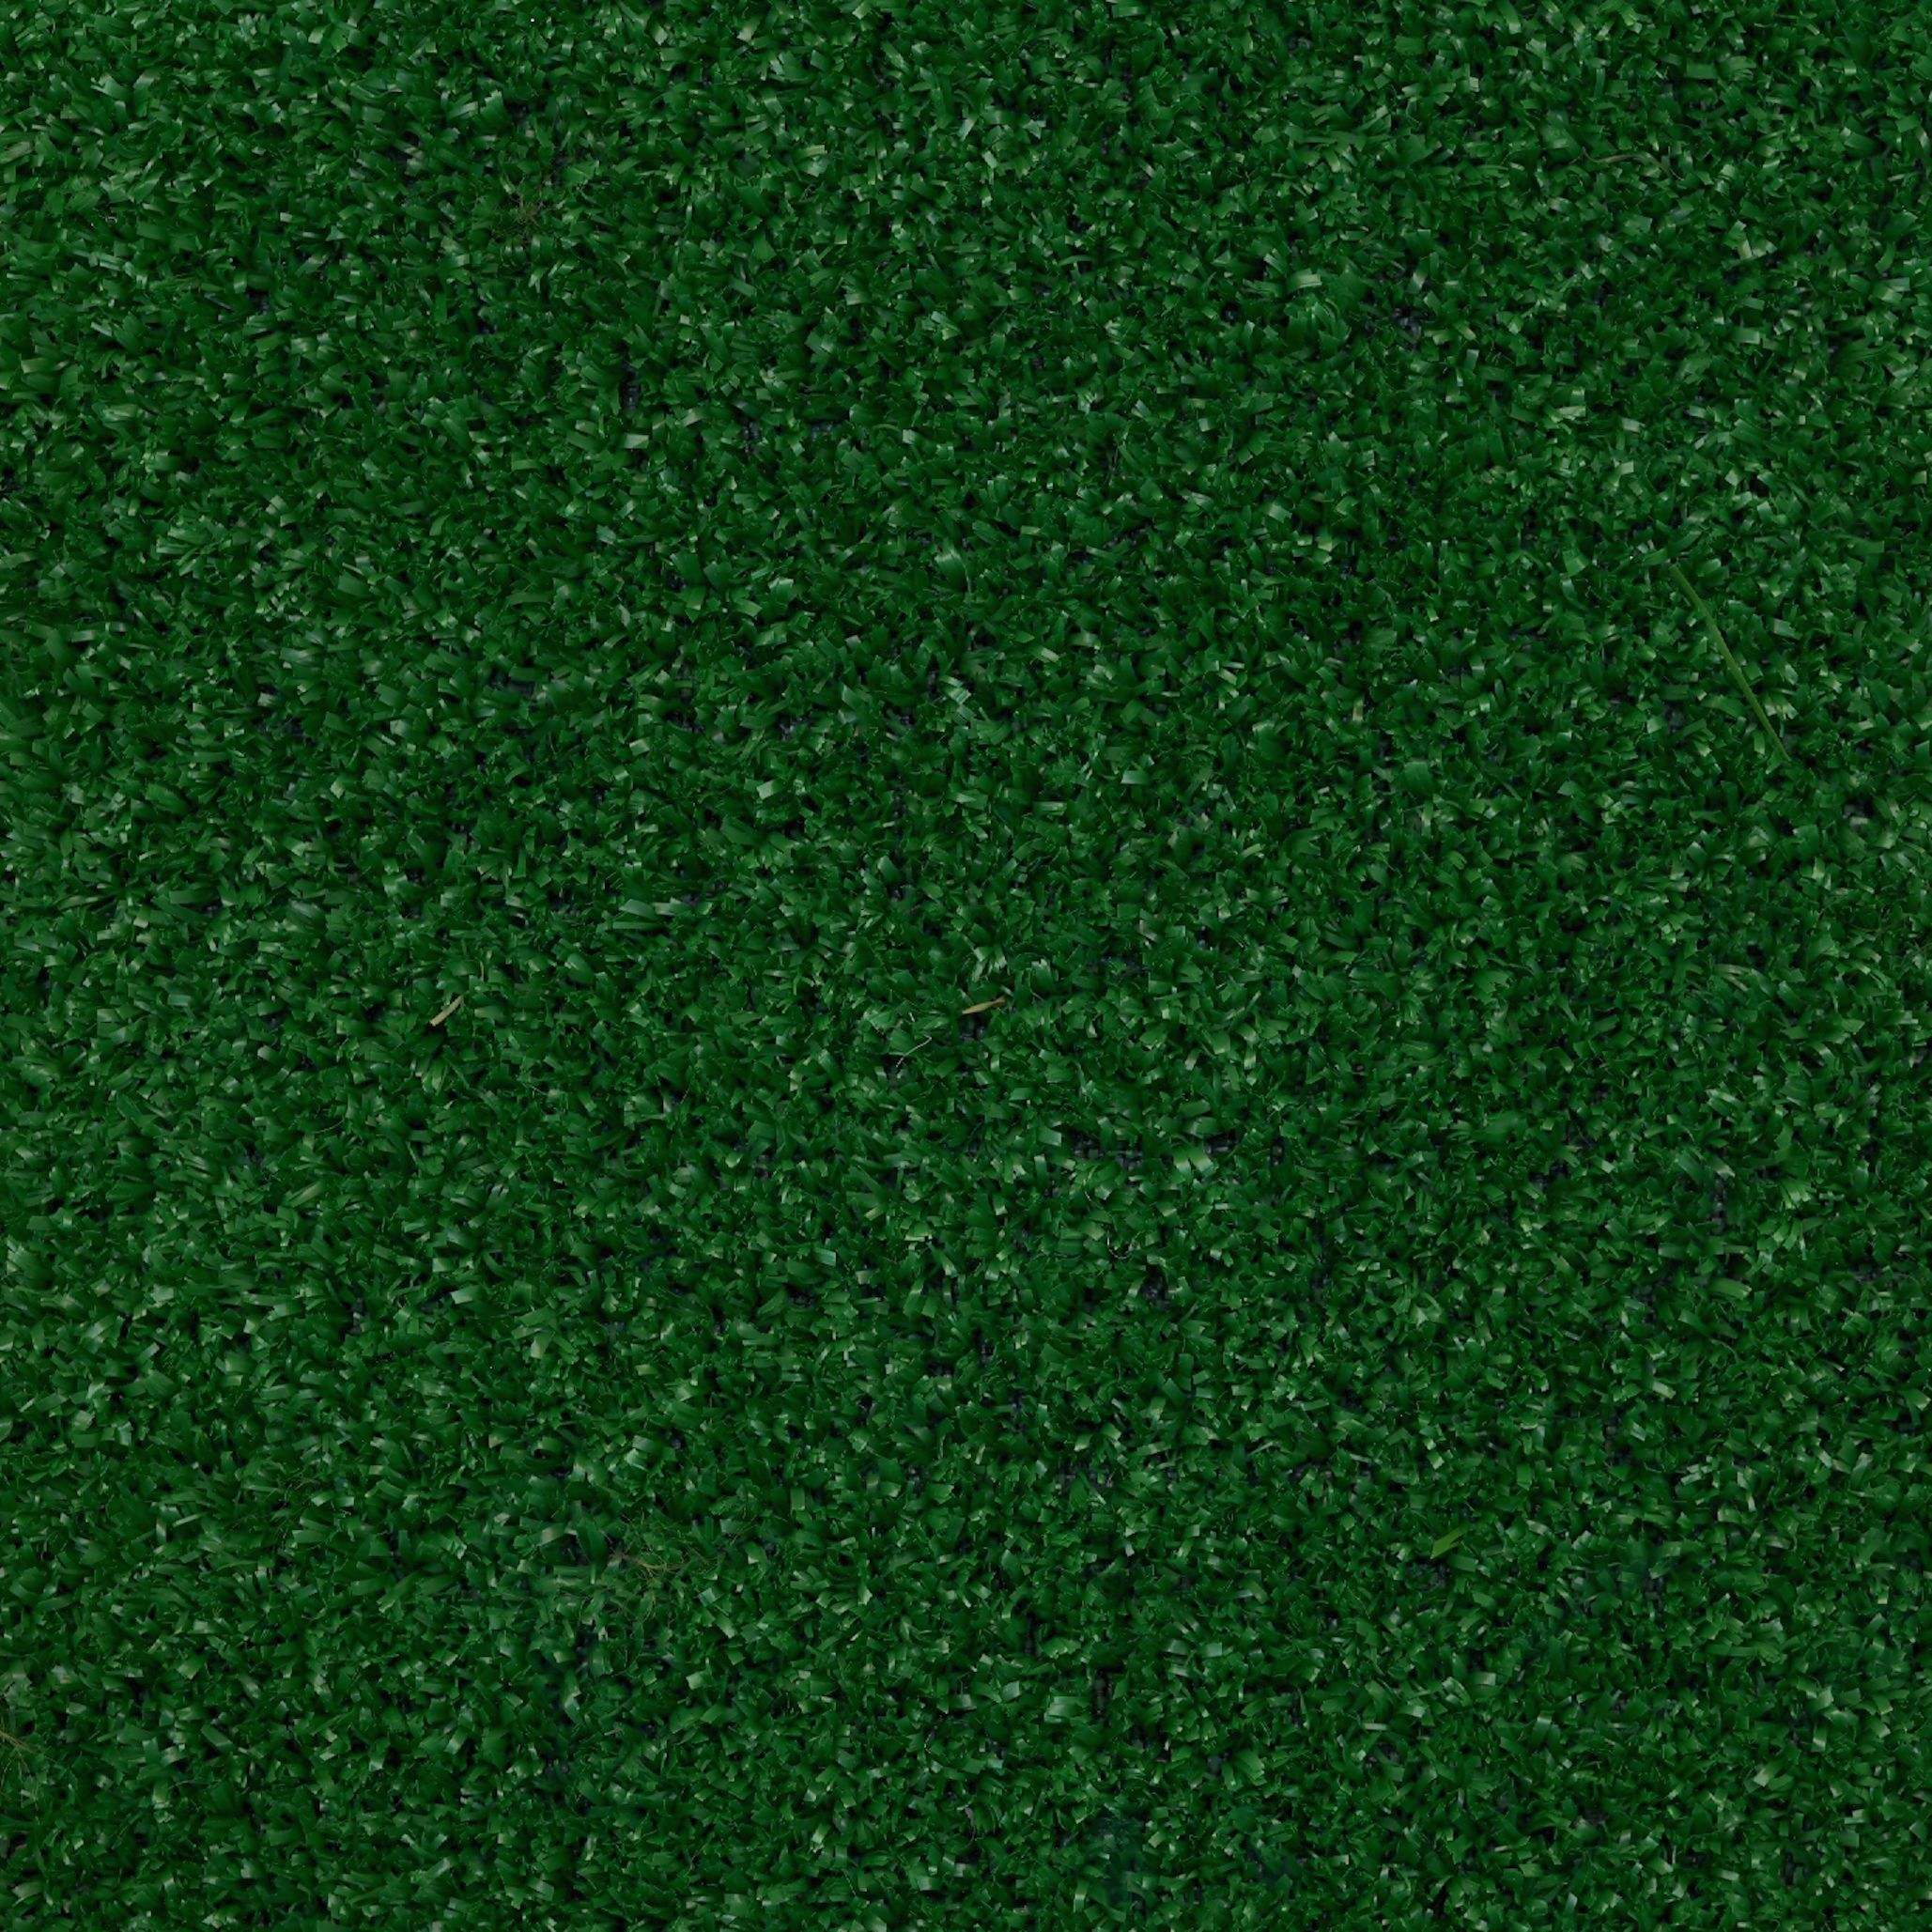 Padstow Low Density Artificial Grass W 2 M X L 2m X T 6